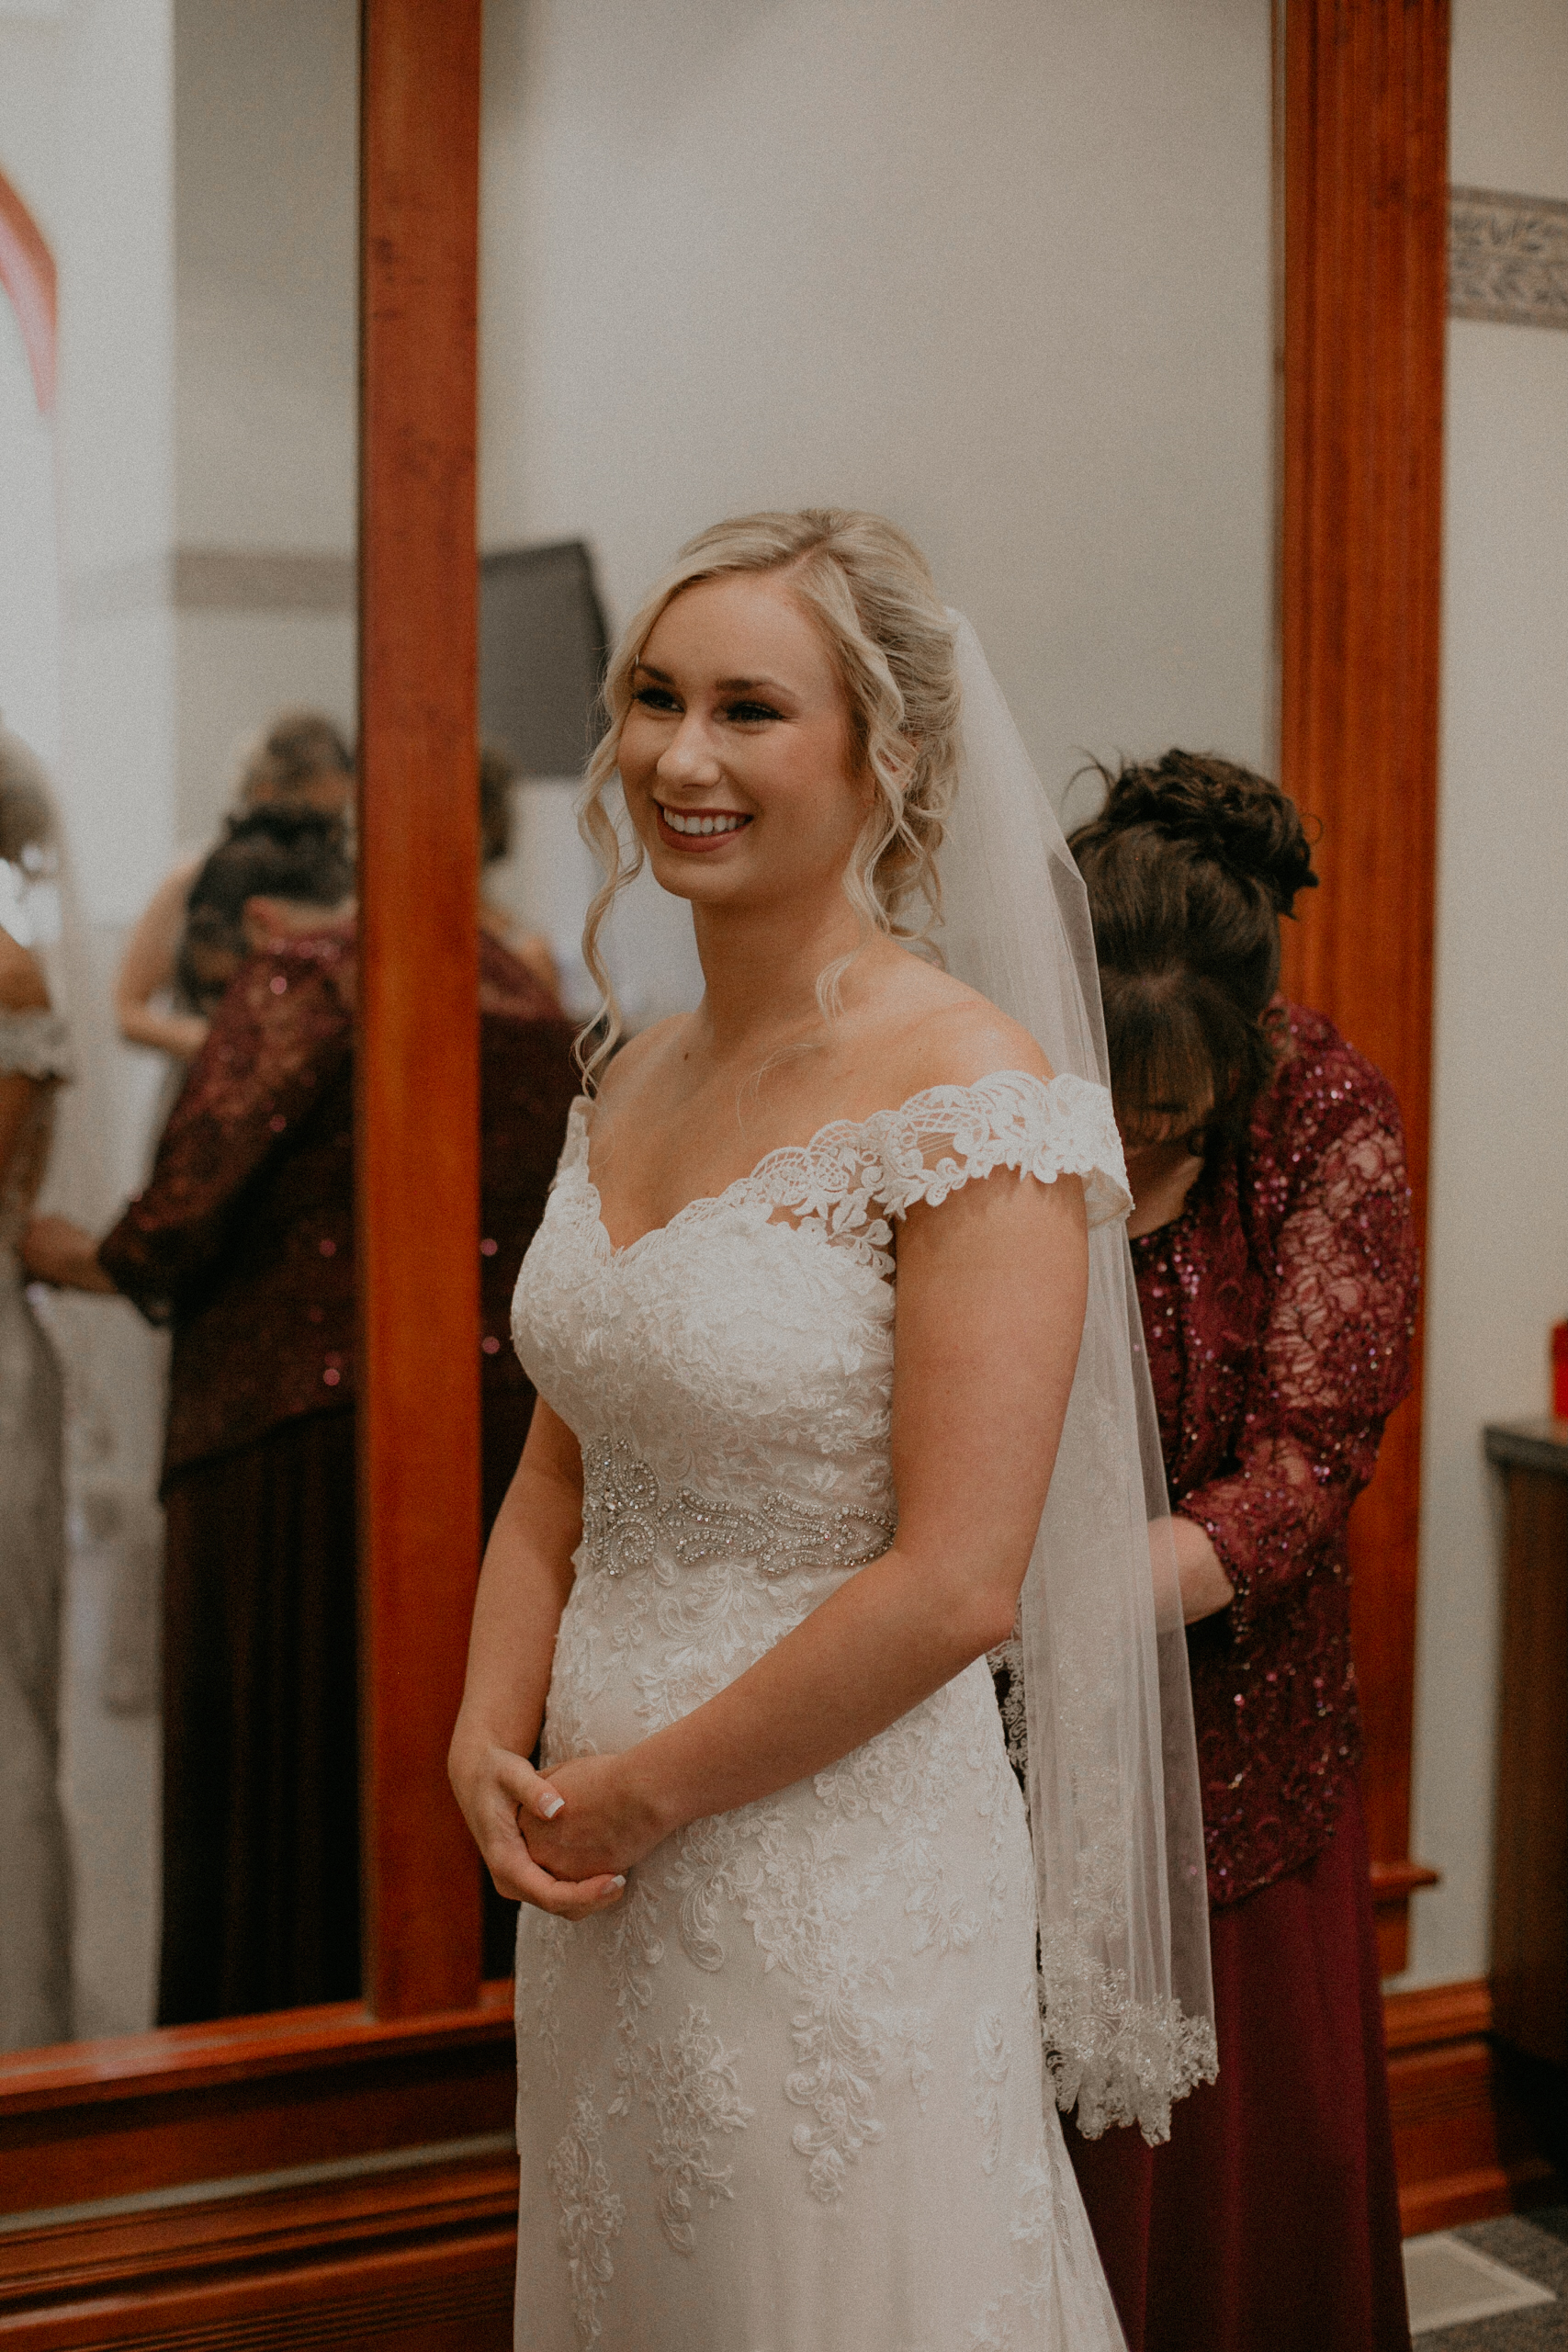 Marshfield WI wedding photographer Andrea Wagner captures real authentic moments of bride getting ready at her wedding